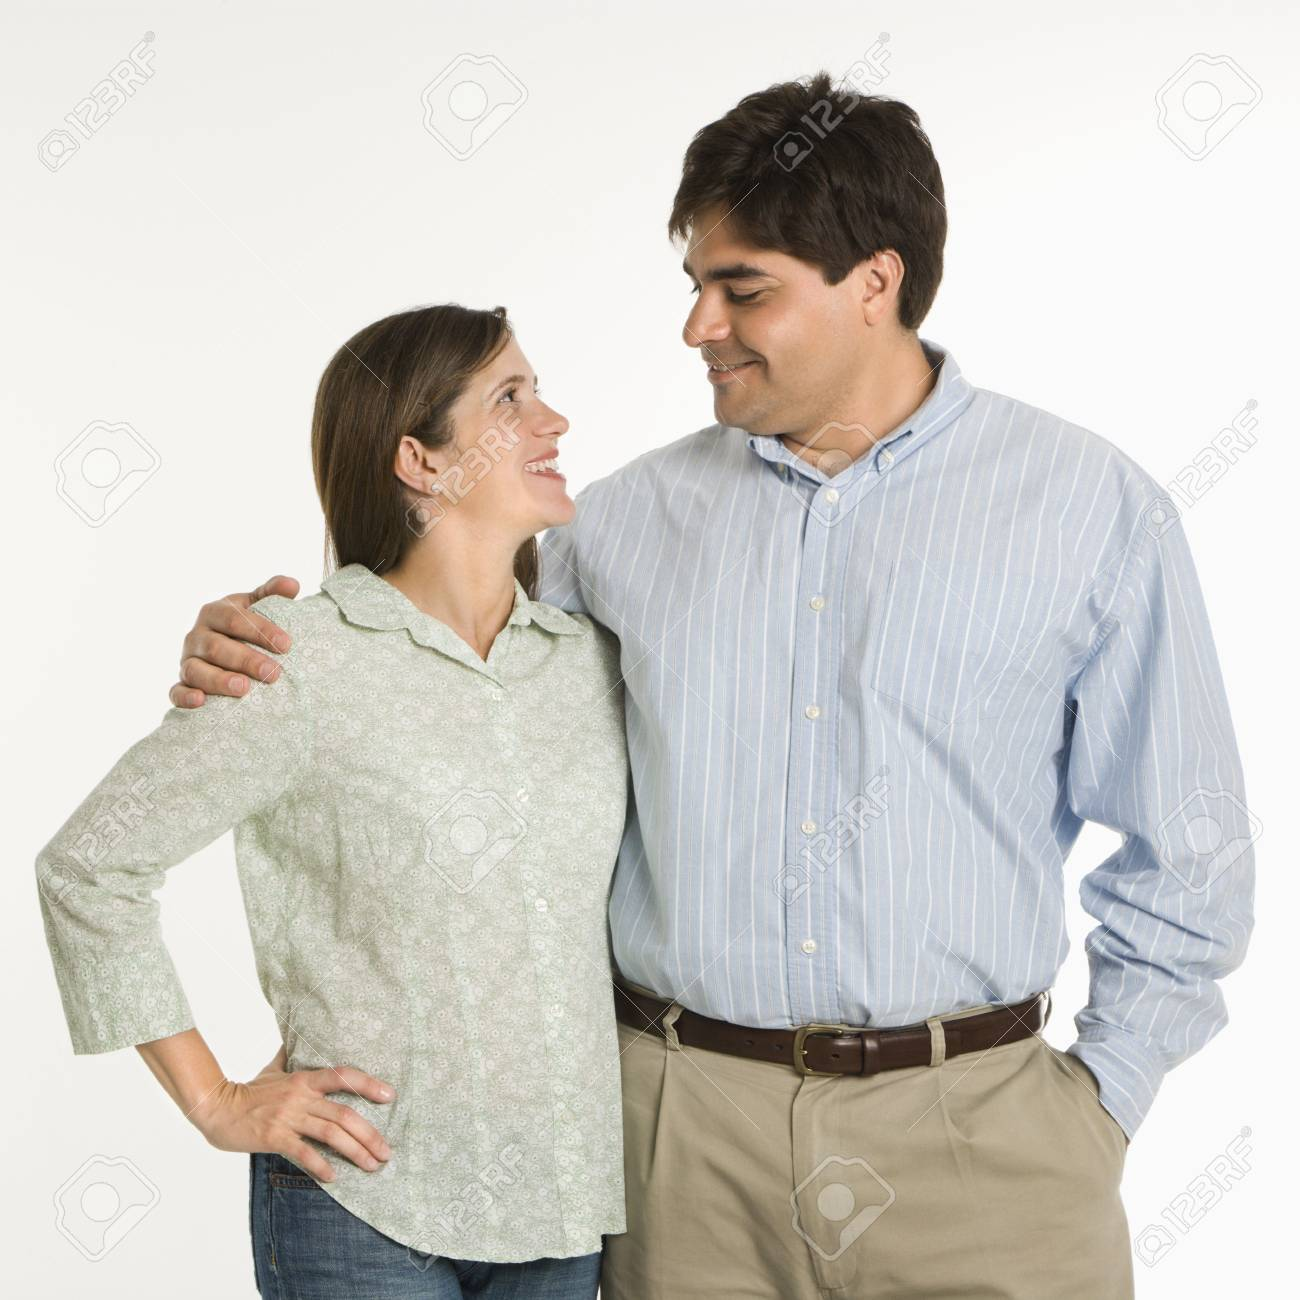 Couple standing smiling at eachother against white background. Stock Photo - 1874590